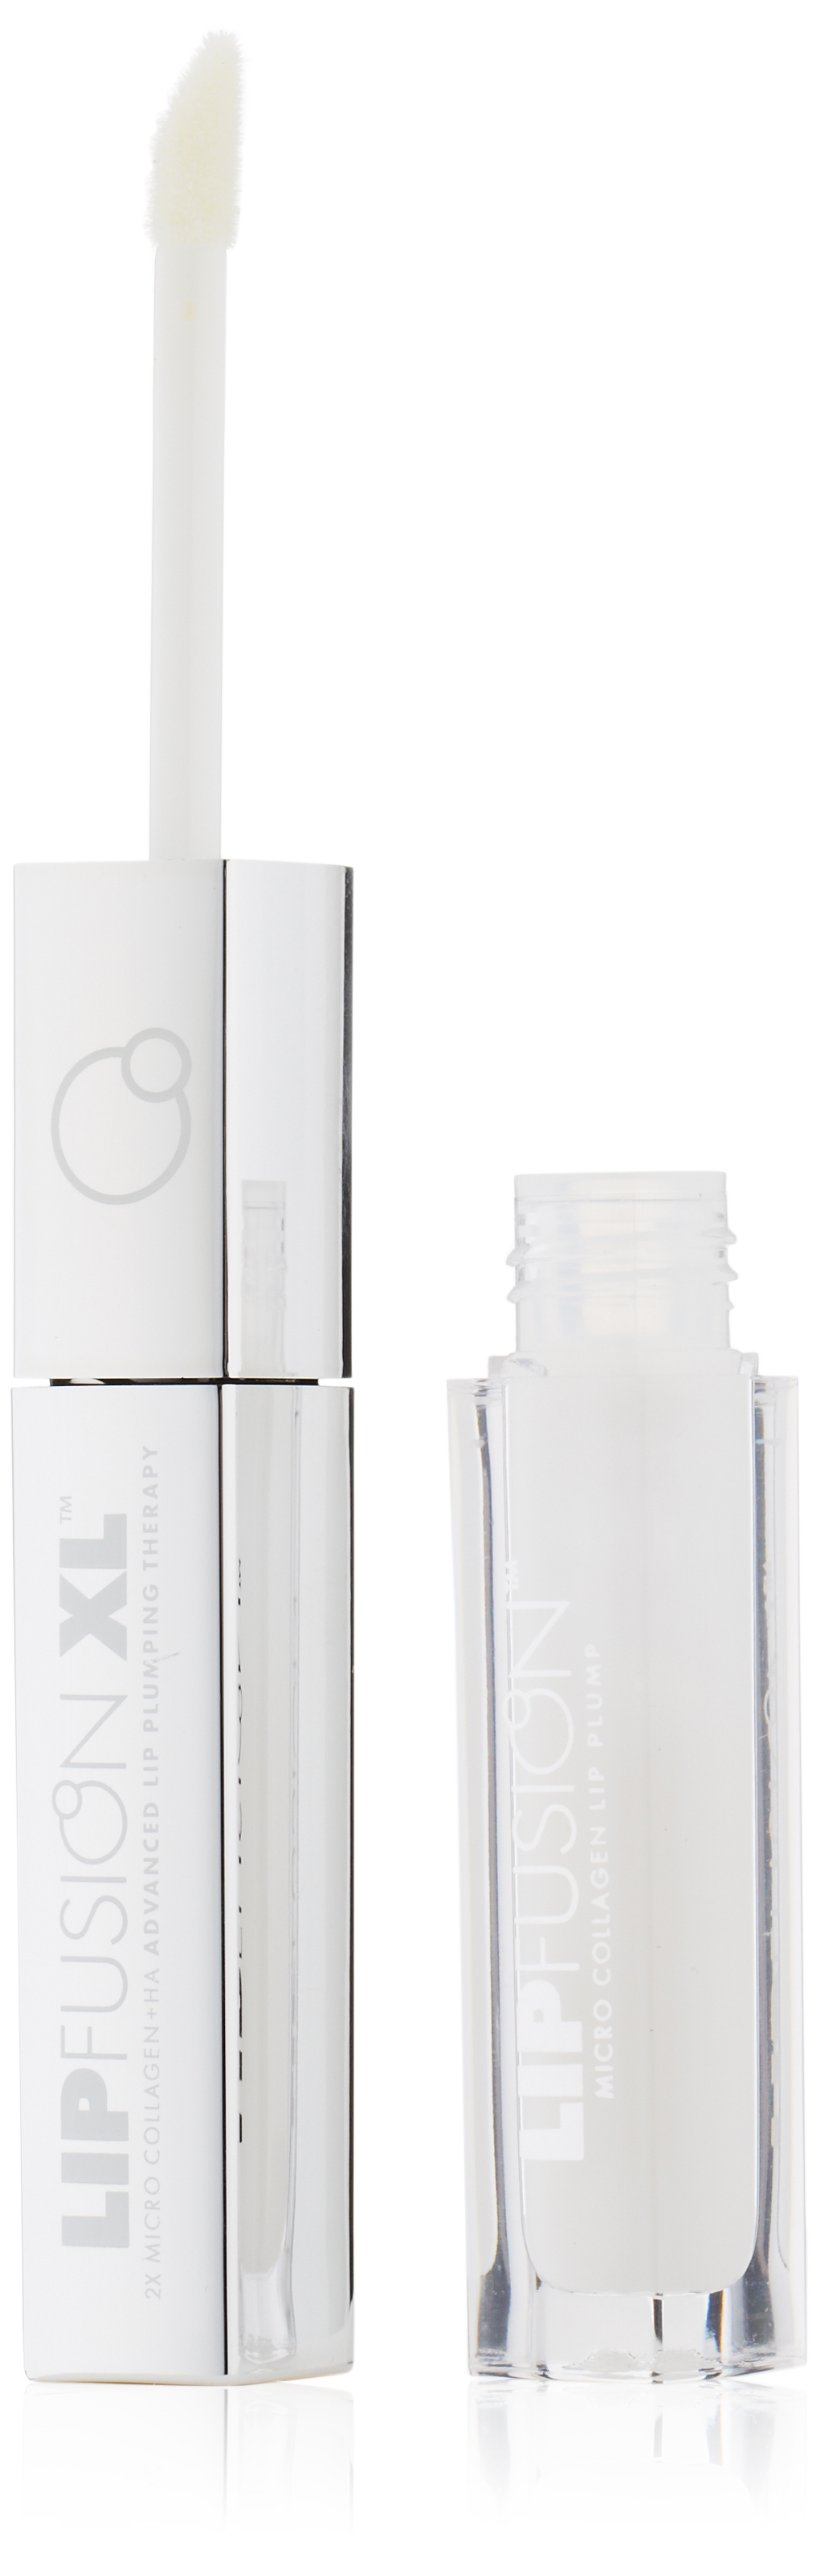 Fusion Beauty Lipfusion Double Ended-Clear, Extra Large, 0.14-Ounce by Fusion Beauty (Image #1)